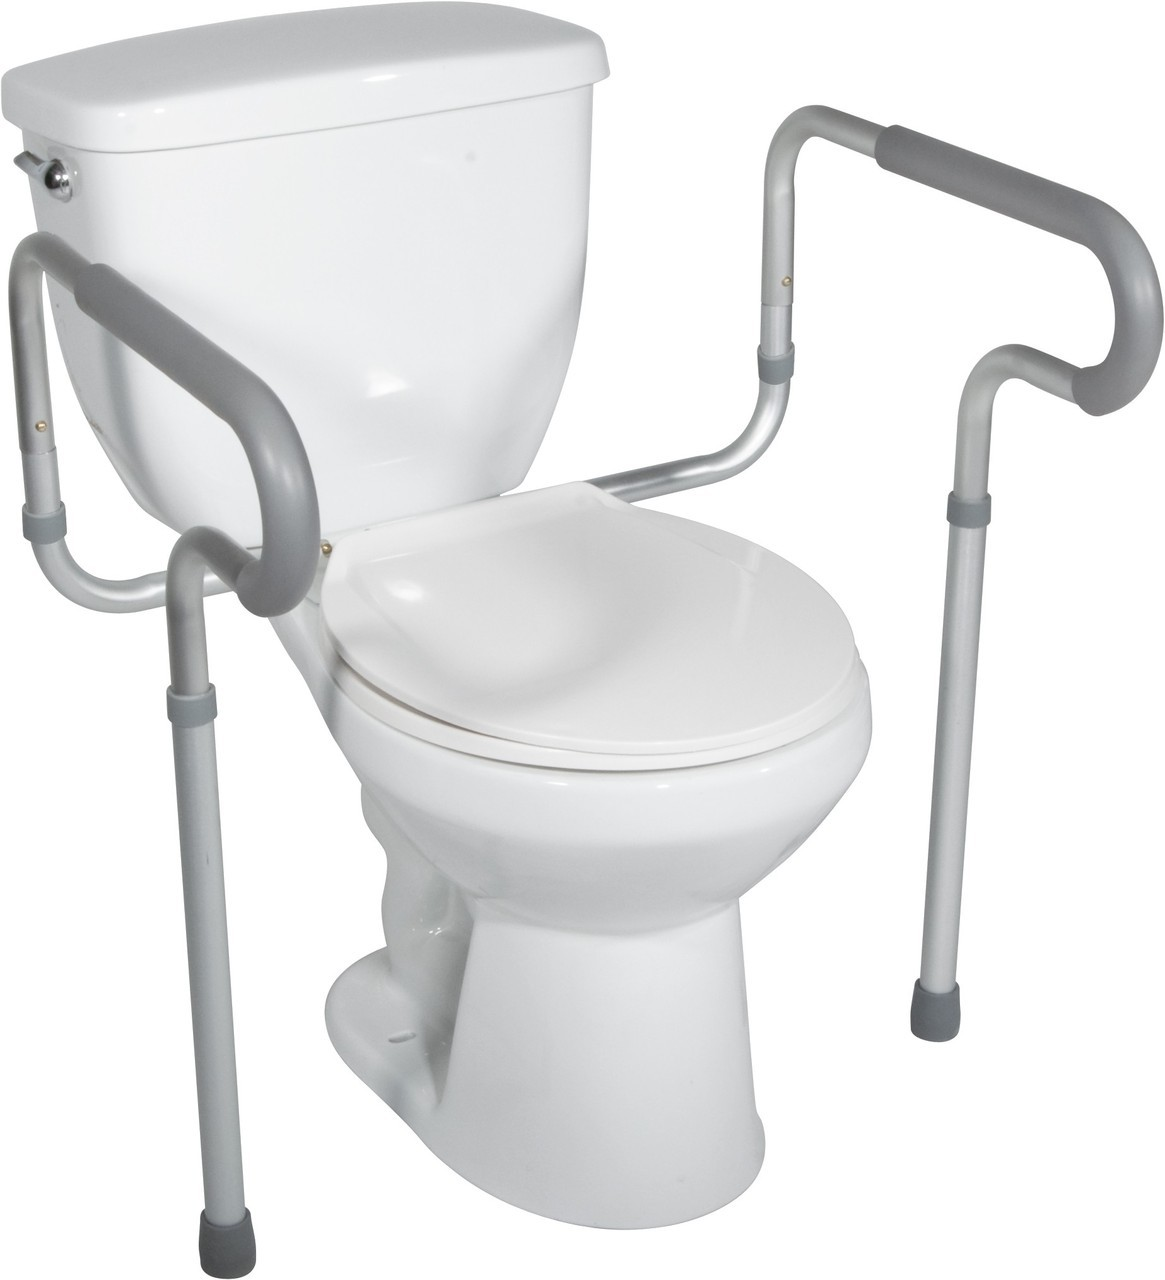 Bathroom Amp Toilet Safety Toilet Seat Risers Amp Safety